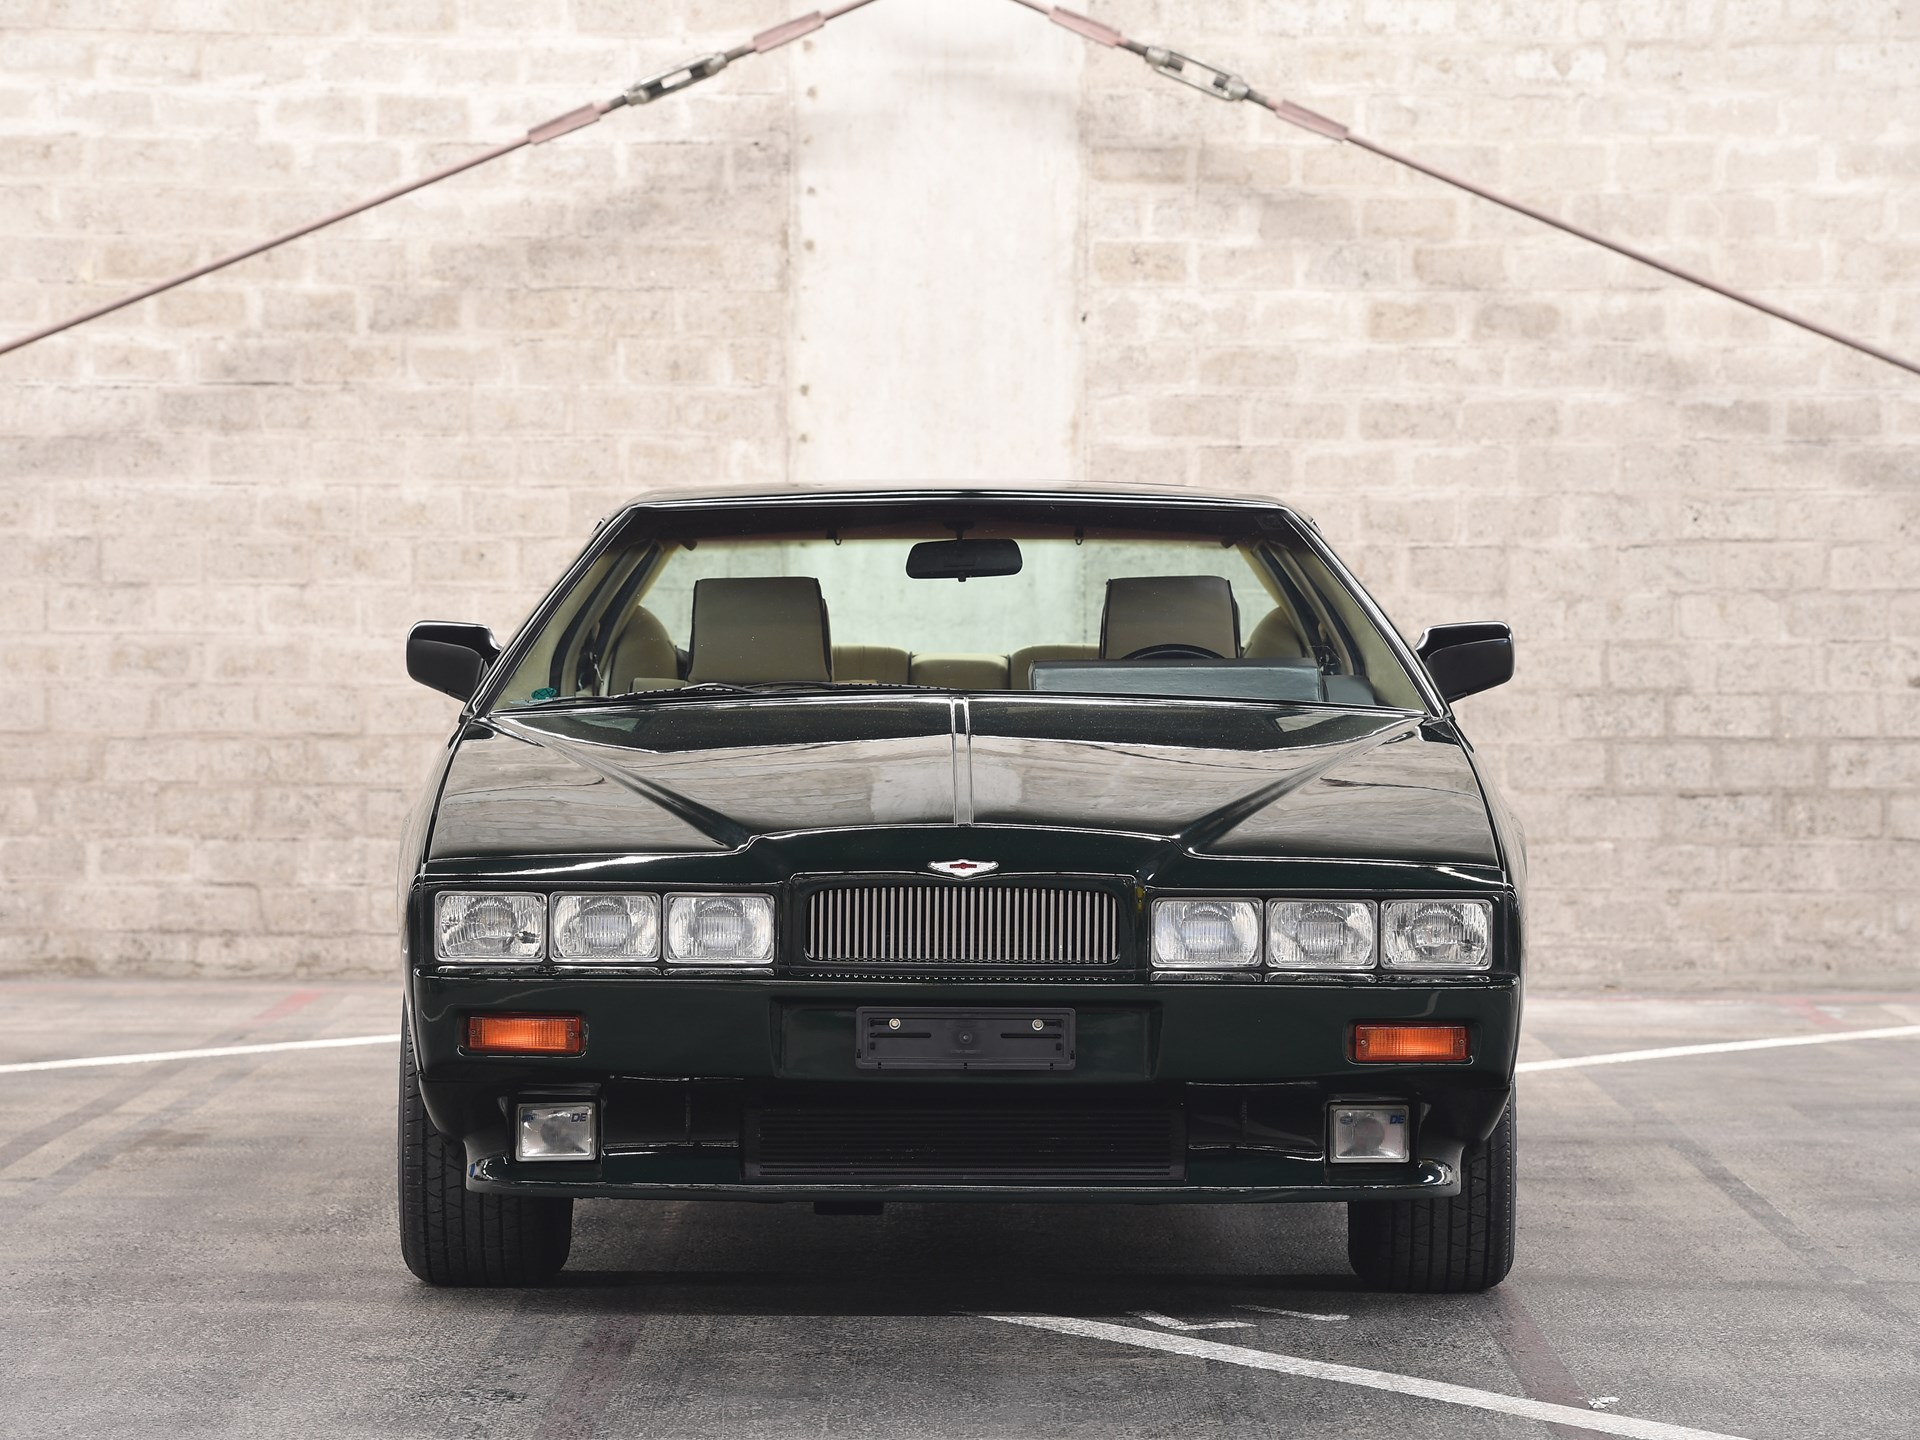 1989 Aston Martin Lagonda Series 4 front end